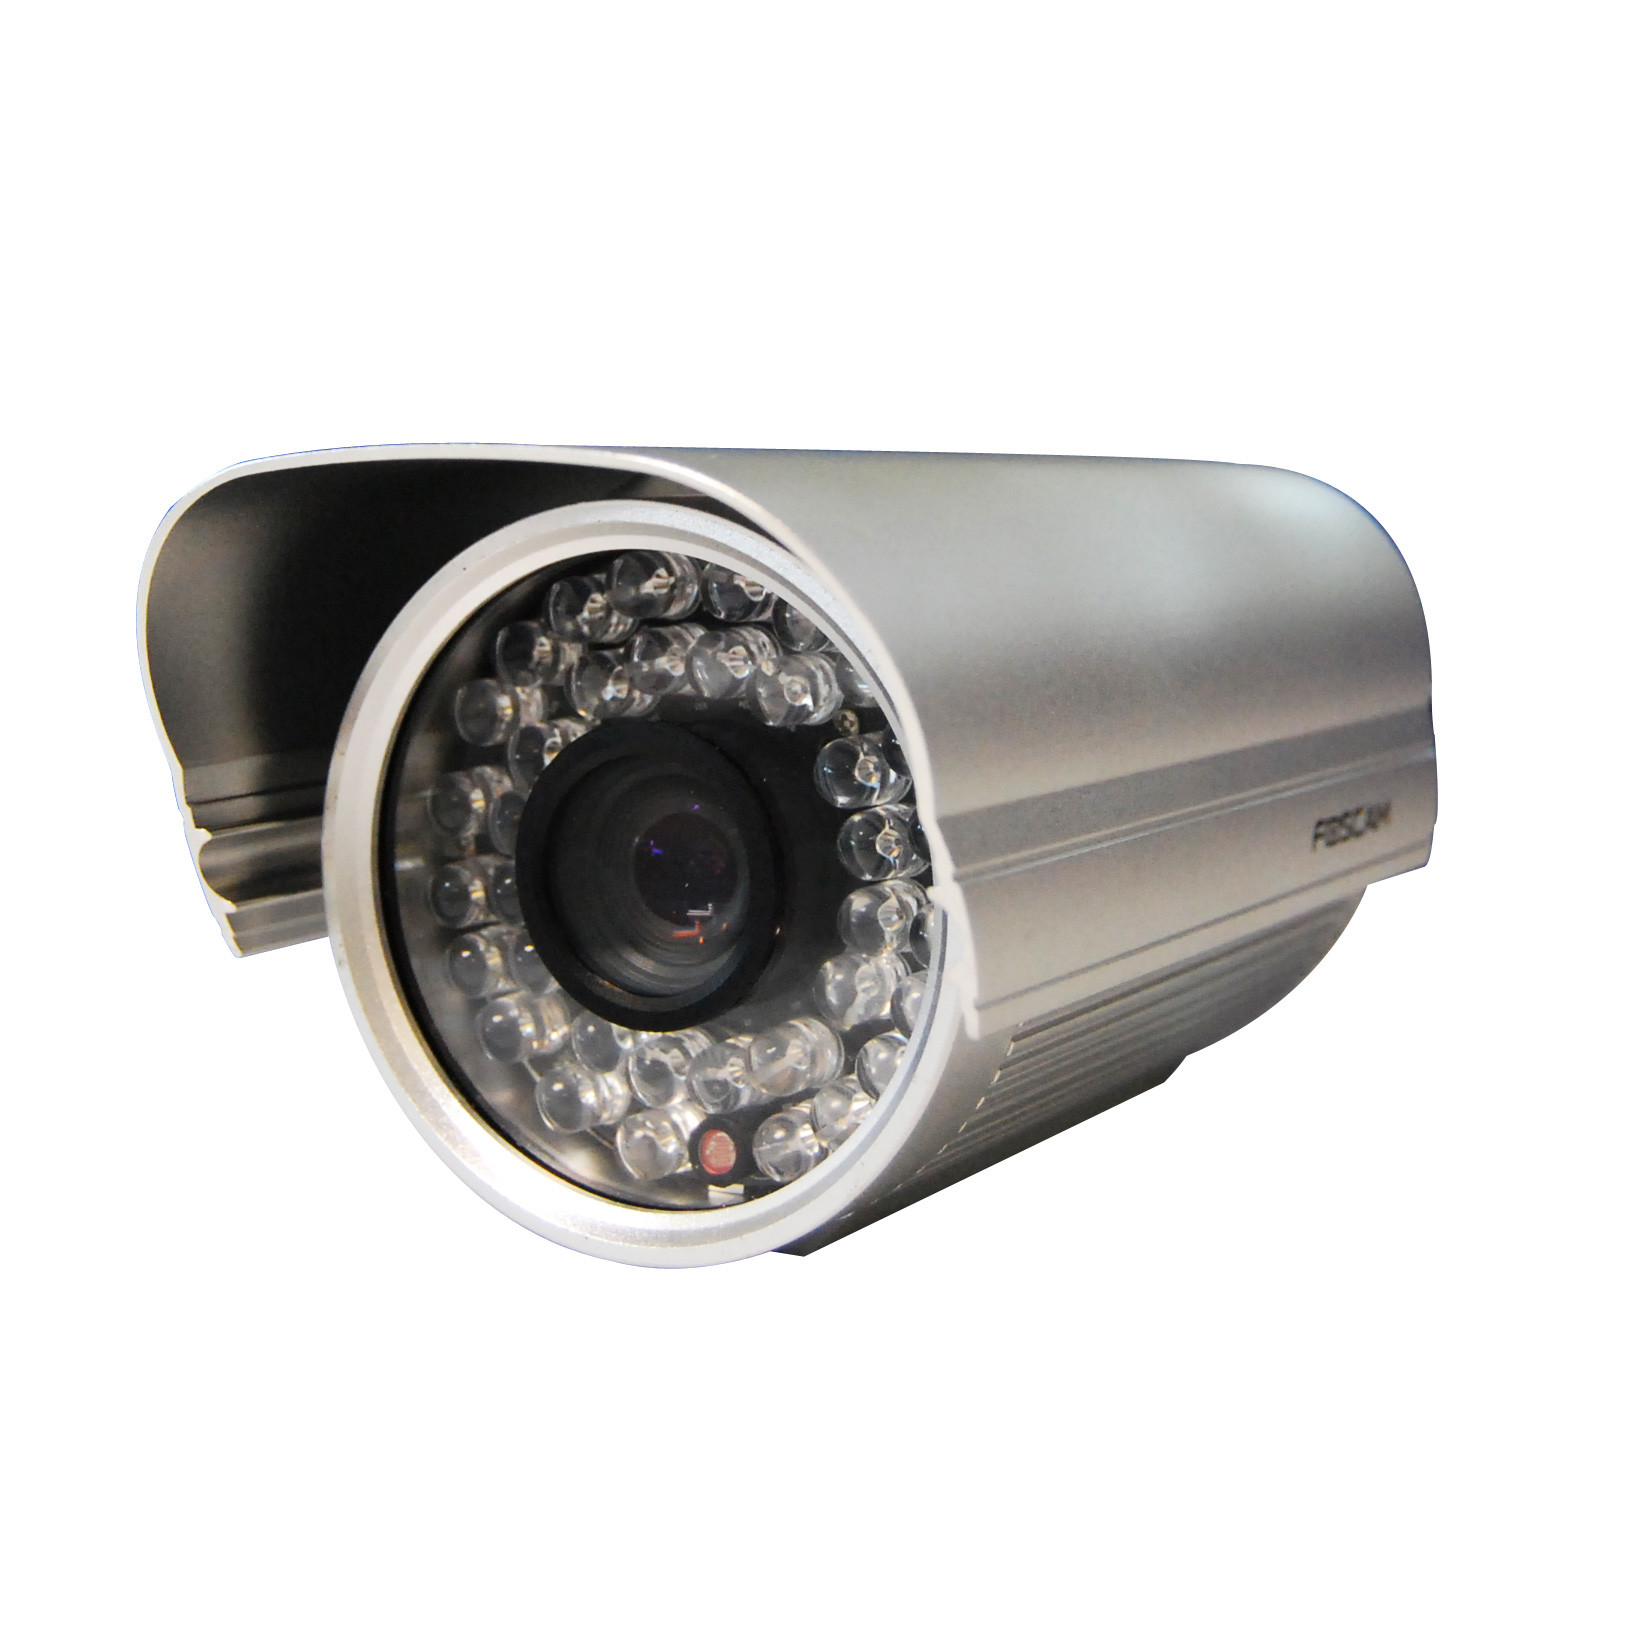 Foscam Wiring Diagram Private Sharing About Video Camera Images Gallery Fi9805e 960p Hd Outdoor Poe Ip Uk Rh Com